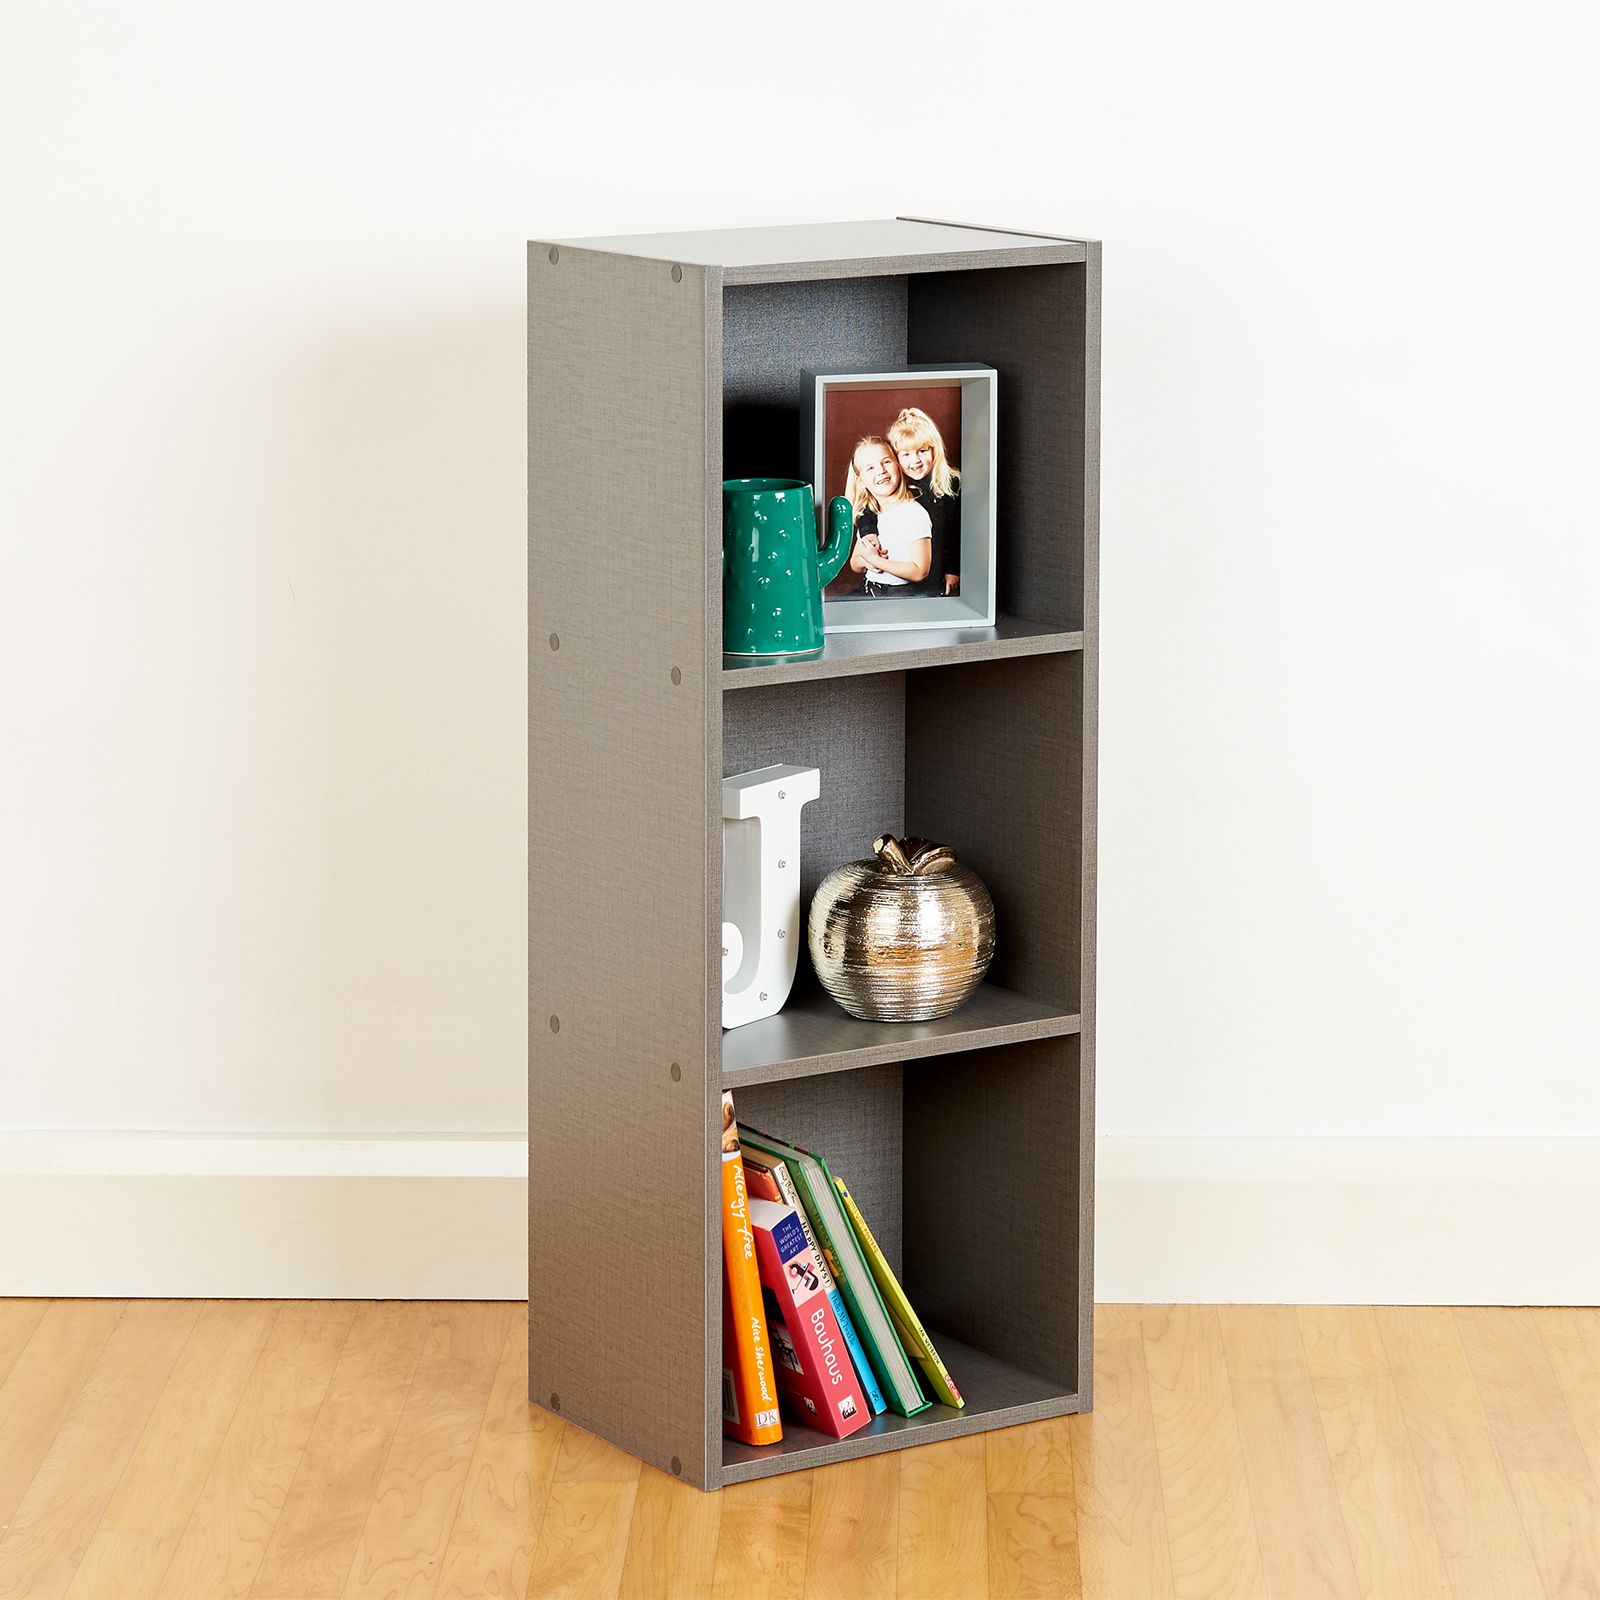 Details About 3 Tier Wooden Grey Cube Bookcase Storage Display Unit Modular  Shelving/shelves